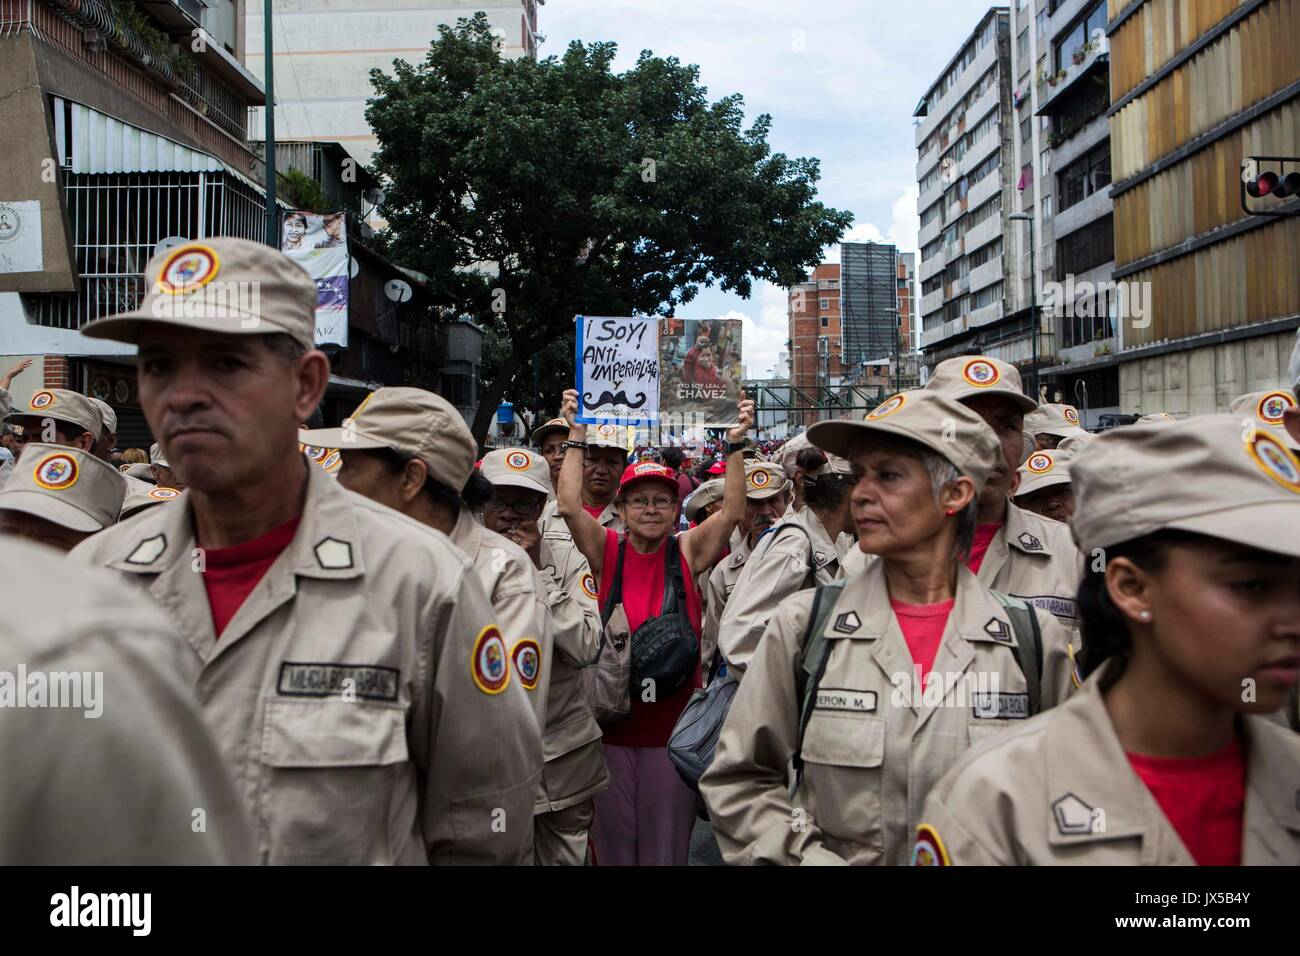 Caracas, Venezuela. 14th Aug, 2017. A view of an 'anti-imperialist' march in  Venezuelan President Nicolas Maduro asked that the 'homeland sellers' have asked for an intervention in the country and have supported the 'US' threat be prosecuted by the National Constituent Assembly. EFE/NATHALIE SAYAGO Credit: EFE News Agency/Alamy Live News - Stock Image